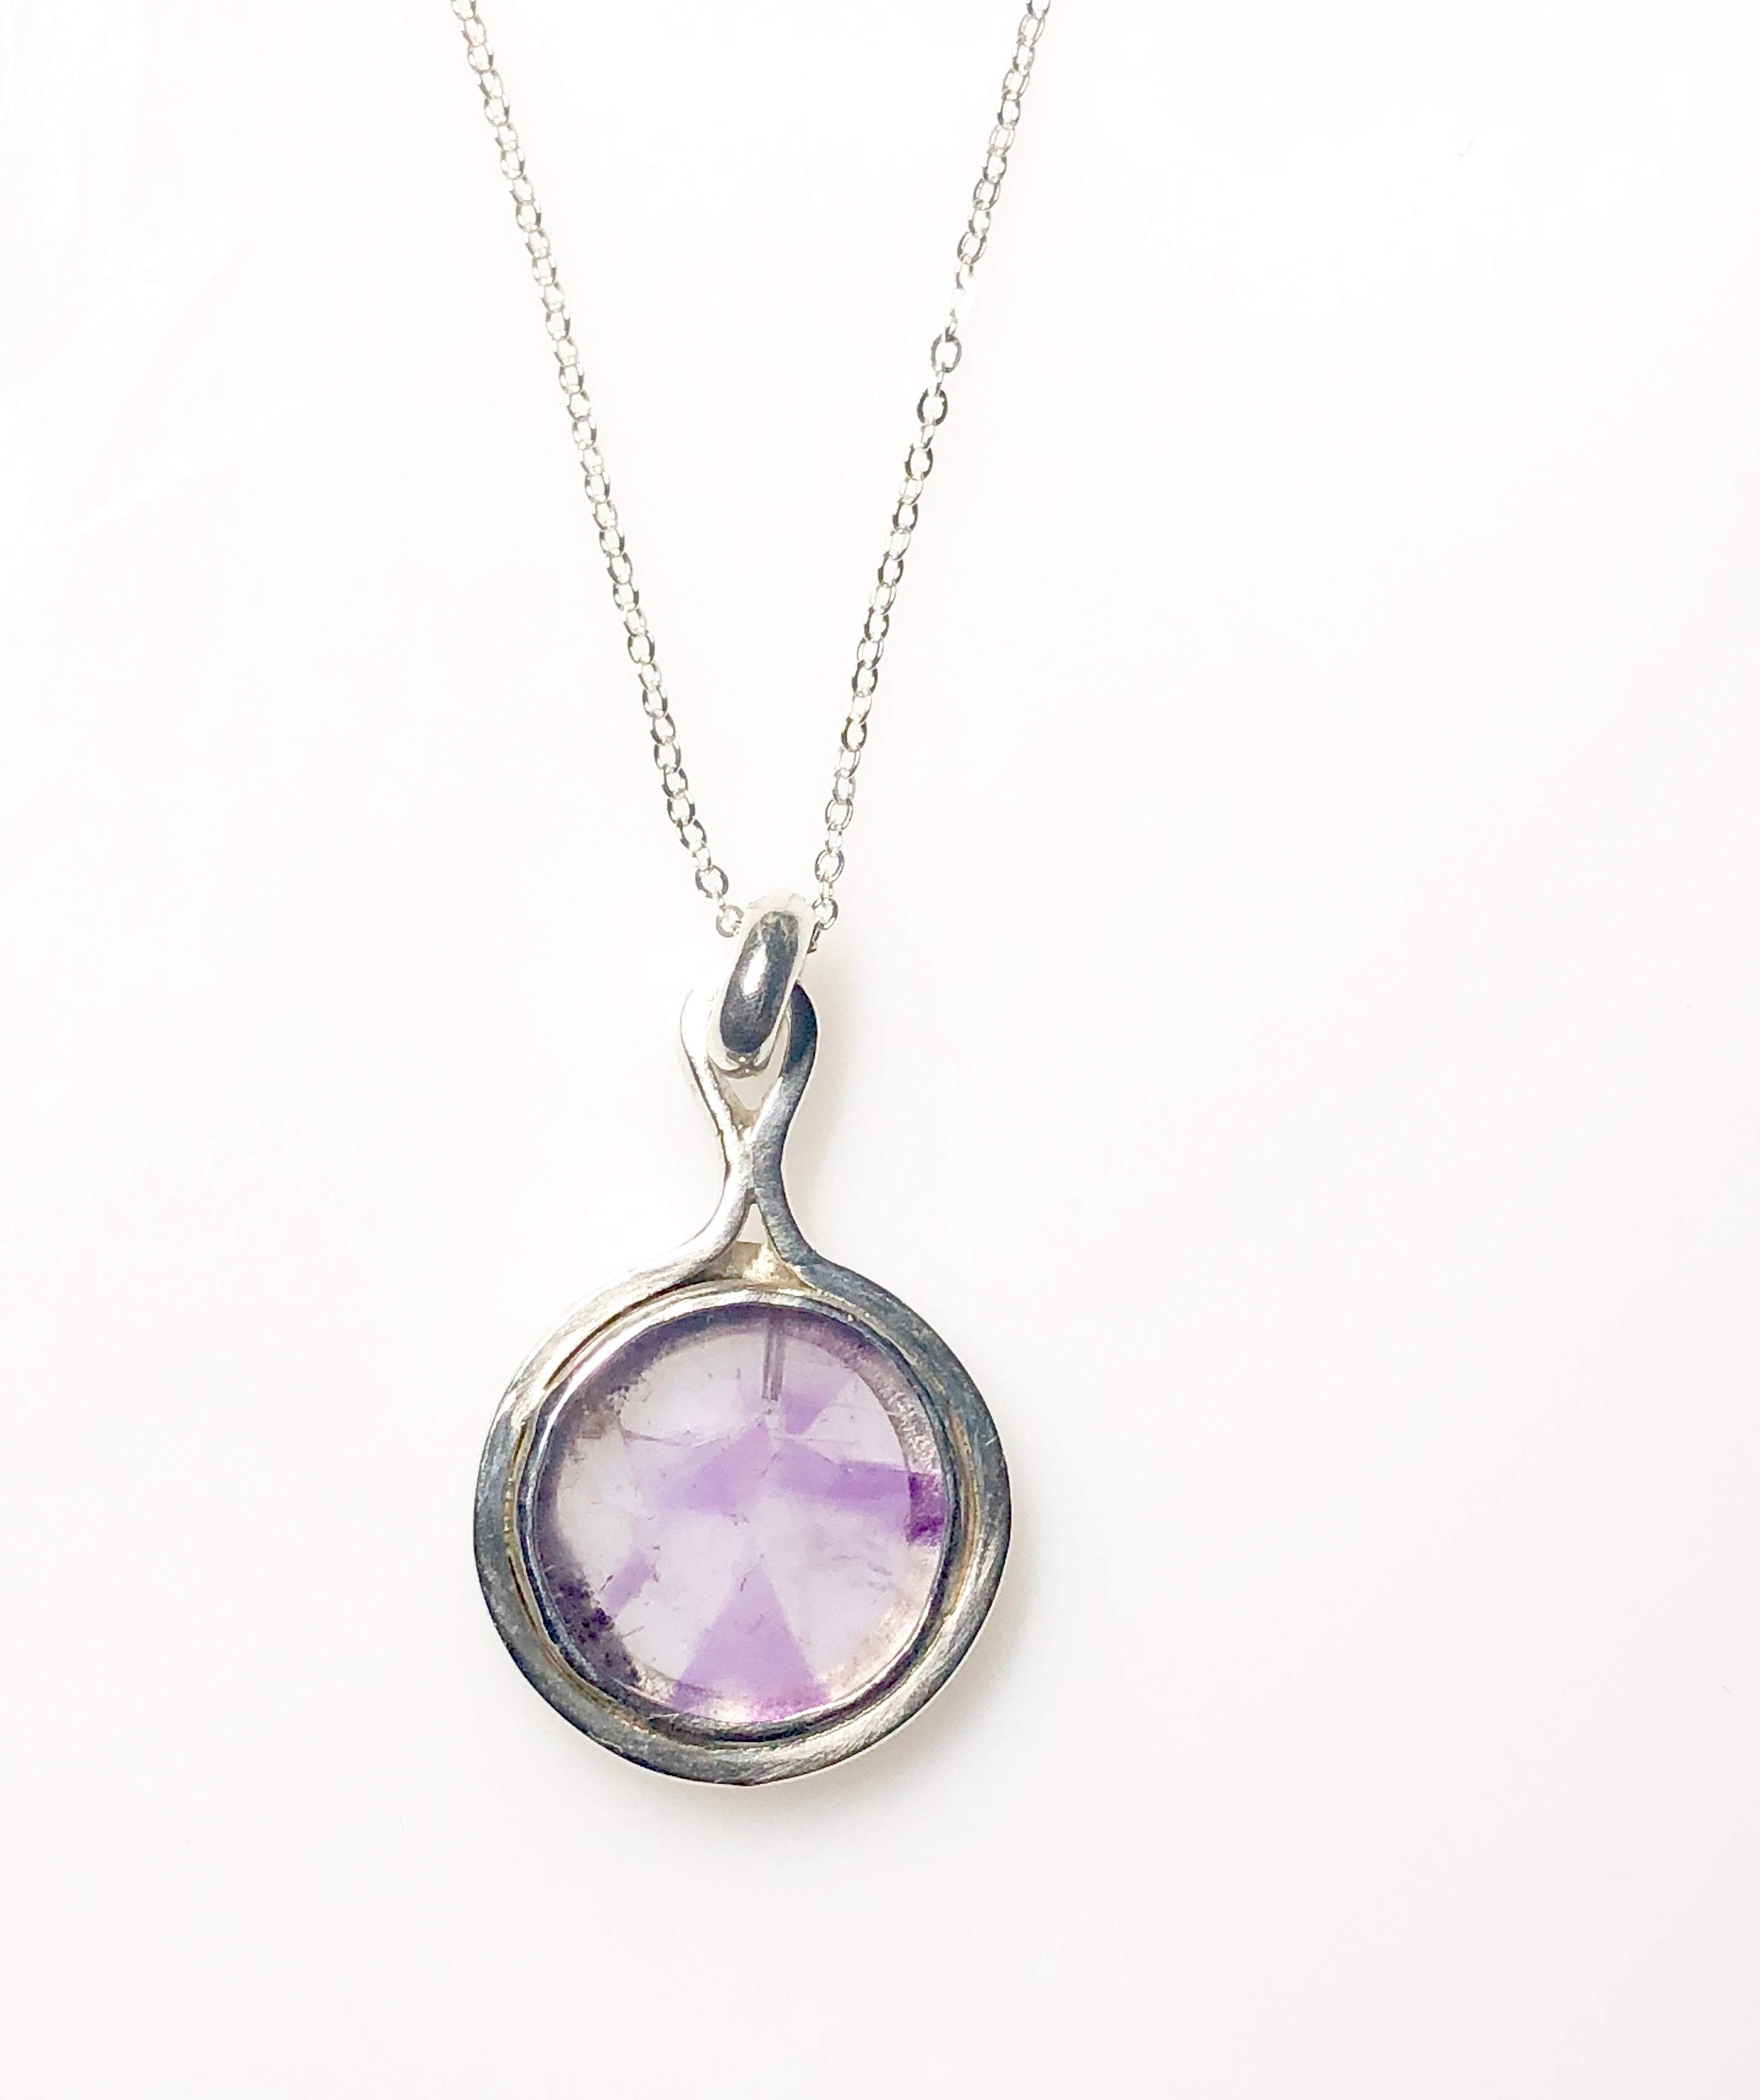 Looking Glass Super Seven Necklace